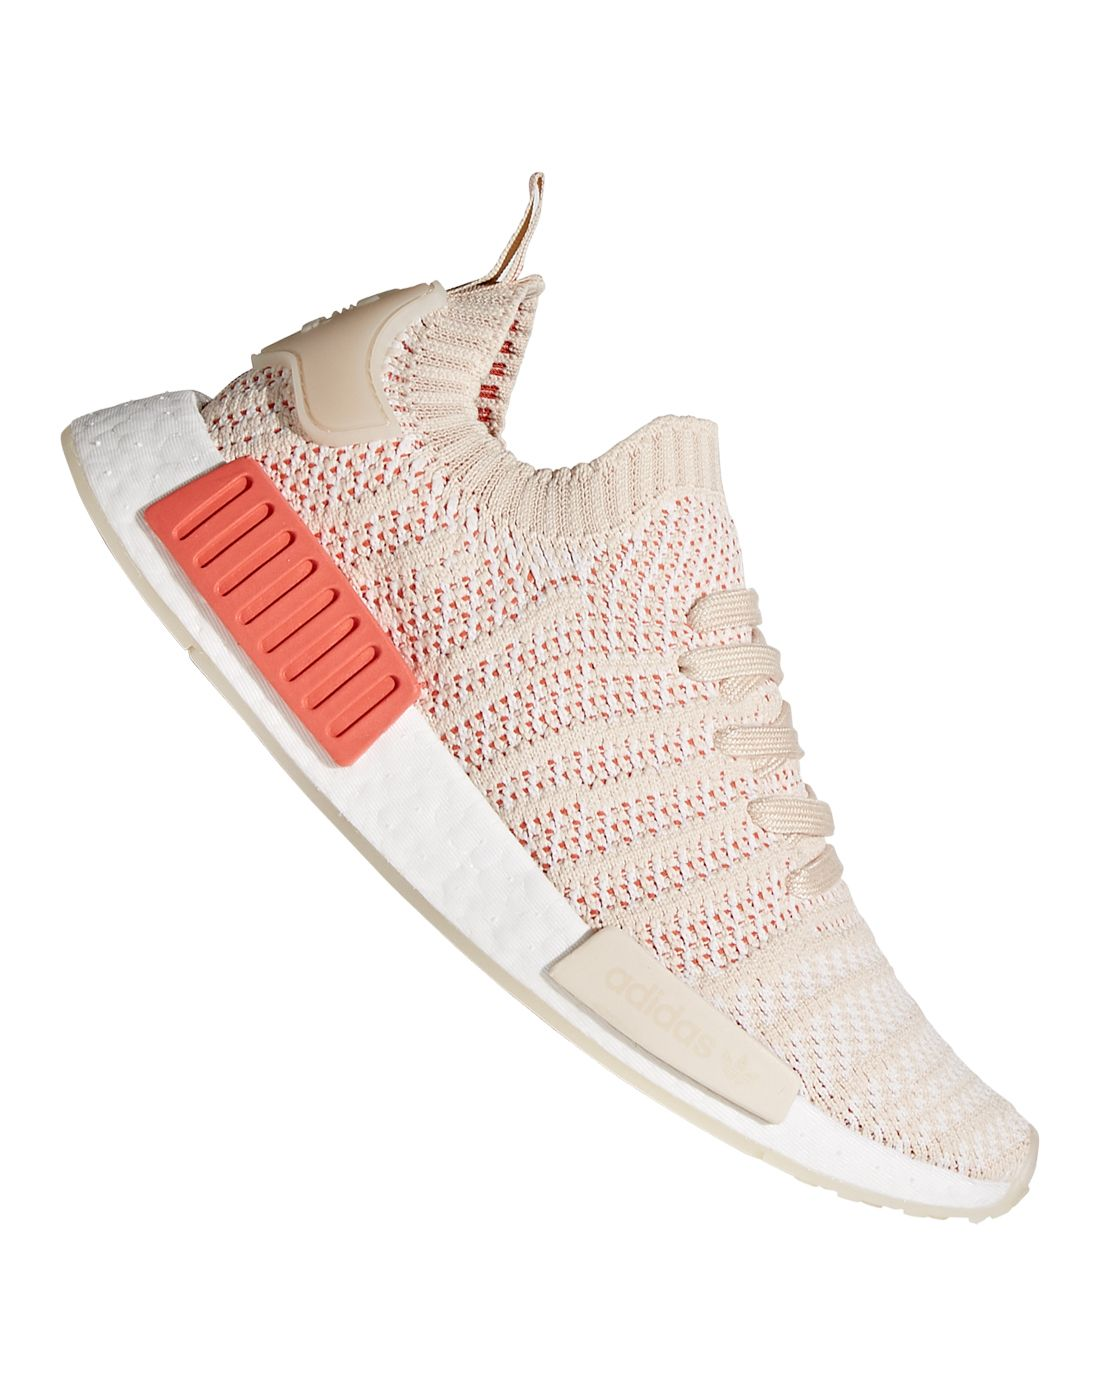 c7e71a13b85f adidas Originals NMD R1 STLT PrimeknitThe future of trainers has arrived –  the ultimate in innovation